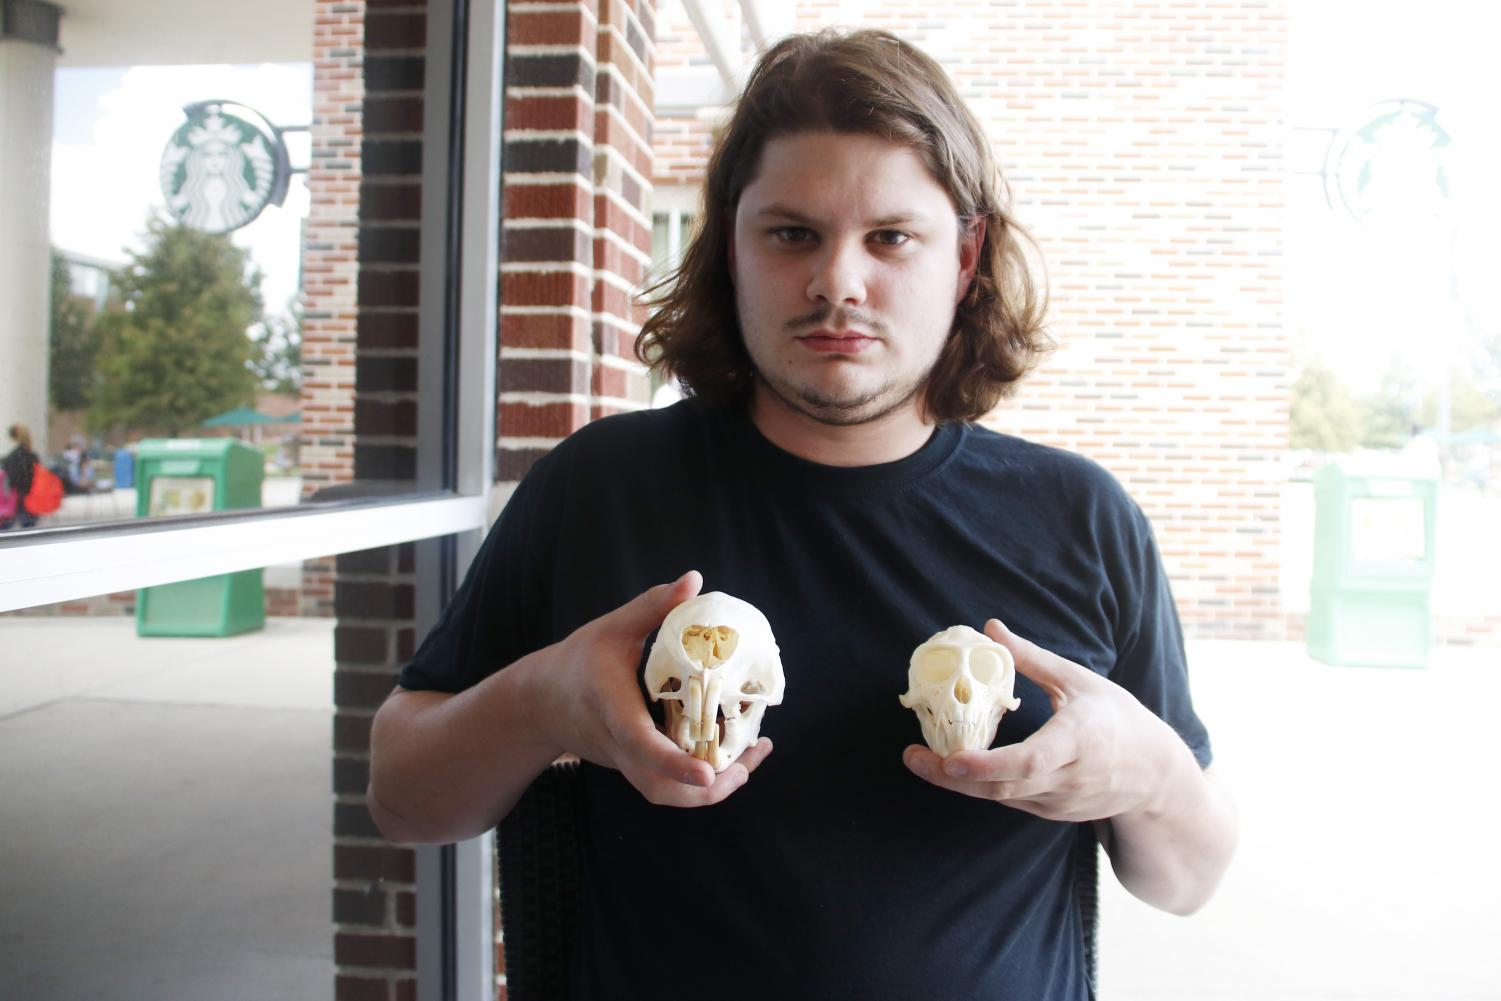 Austin George has turned his talent of cleaning animal heads into a hobby. He posts pictures of his skulls on his Instagram page.